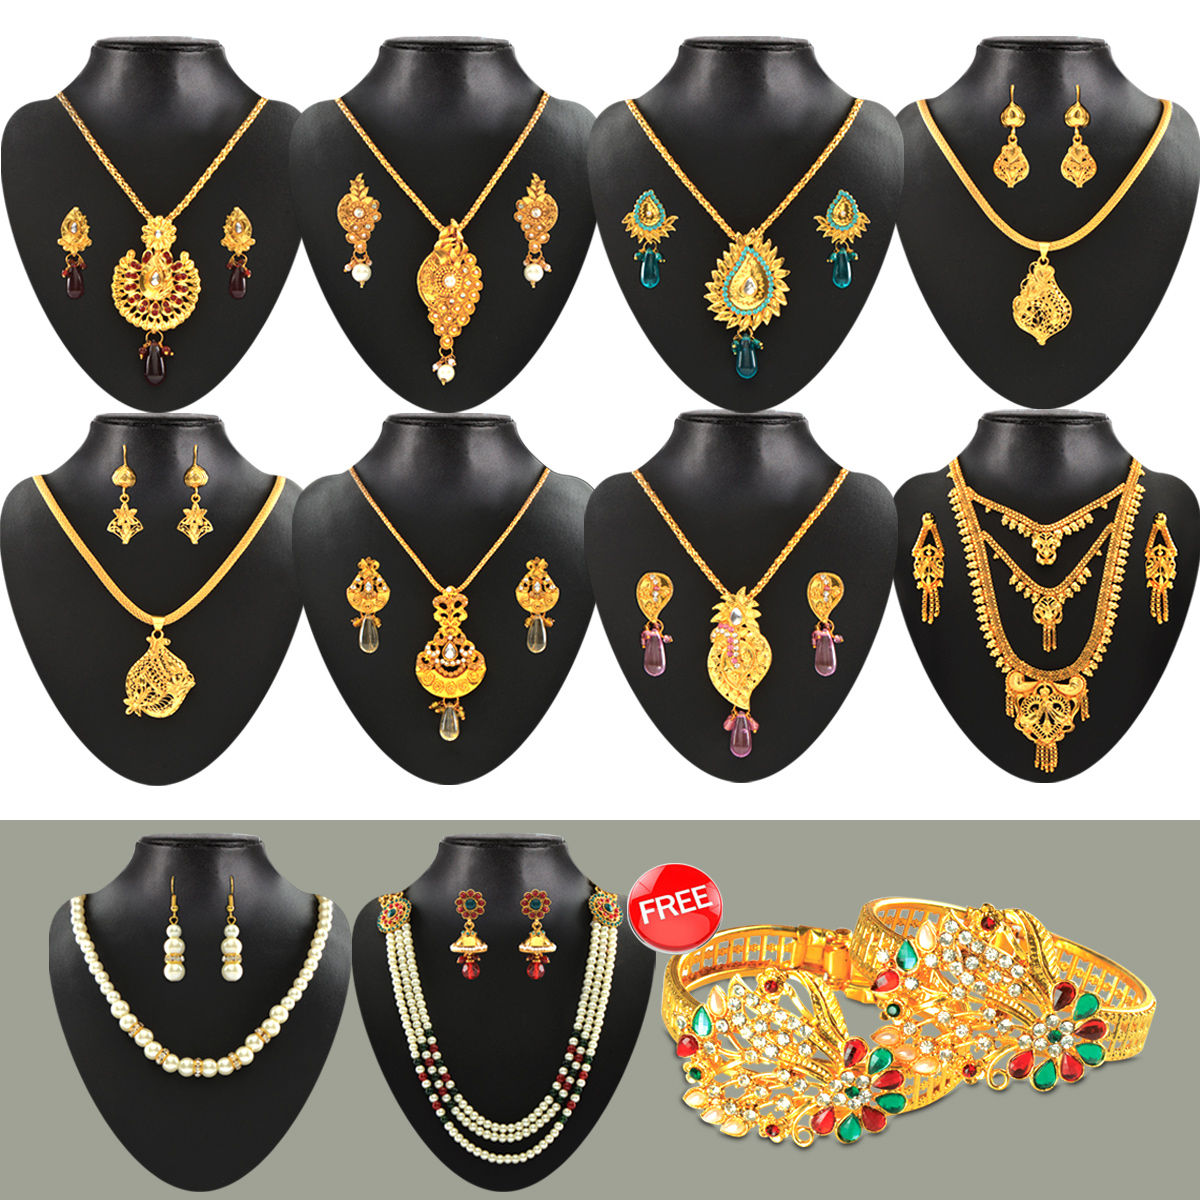 bbf883aa55 Buy Fascinating 1 Gram Gold Plated Jewellery Collection Online at Best  Price in India on Naaptol.com